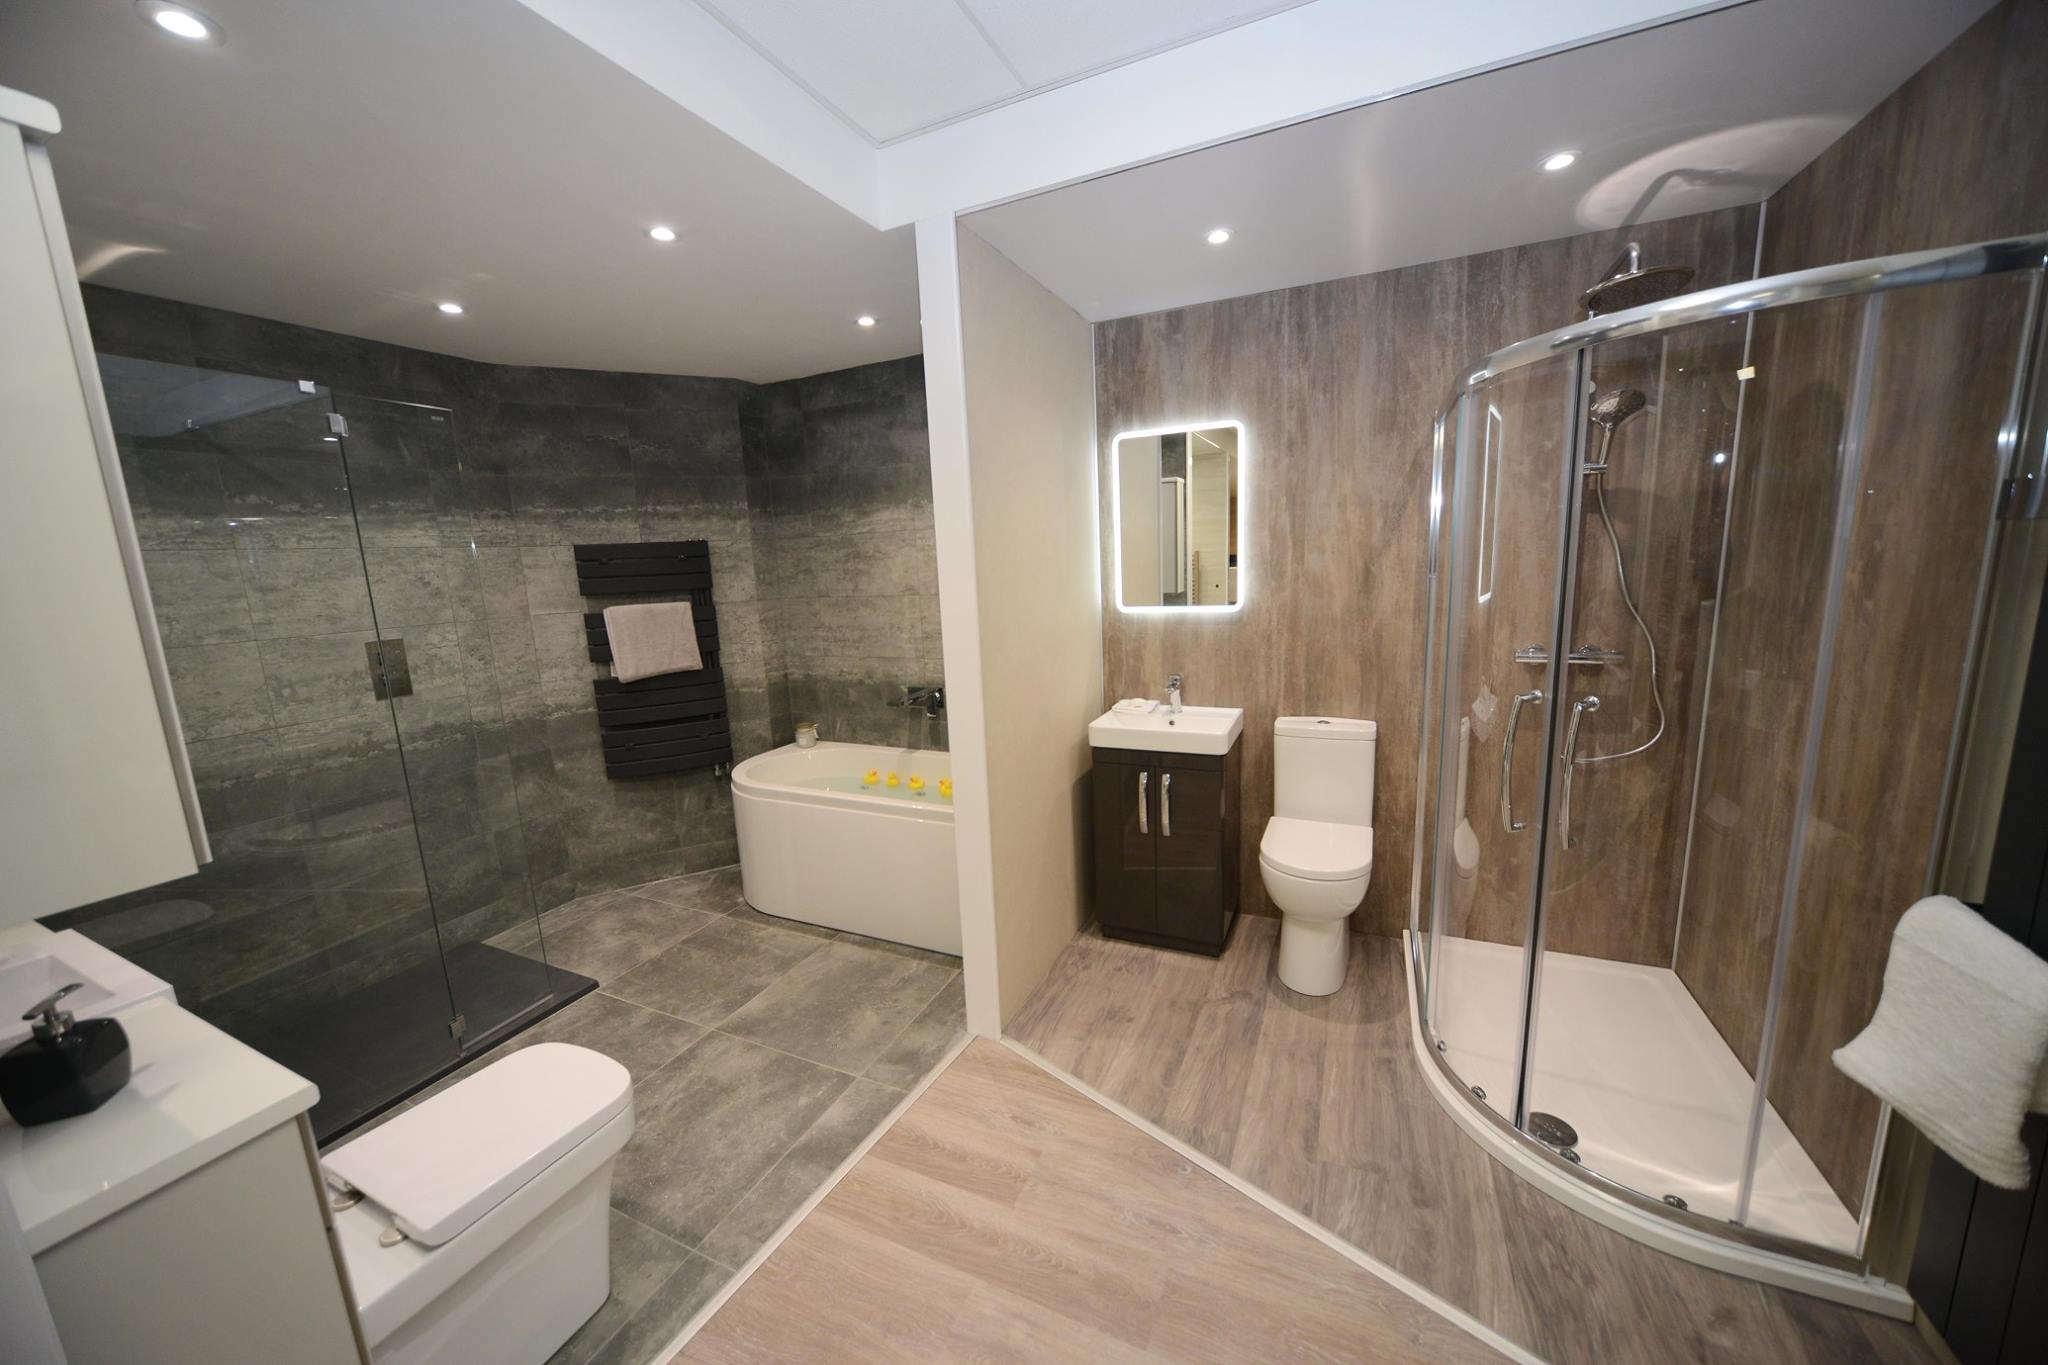 Local Bathroom Showrooms Room Design In Your Home